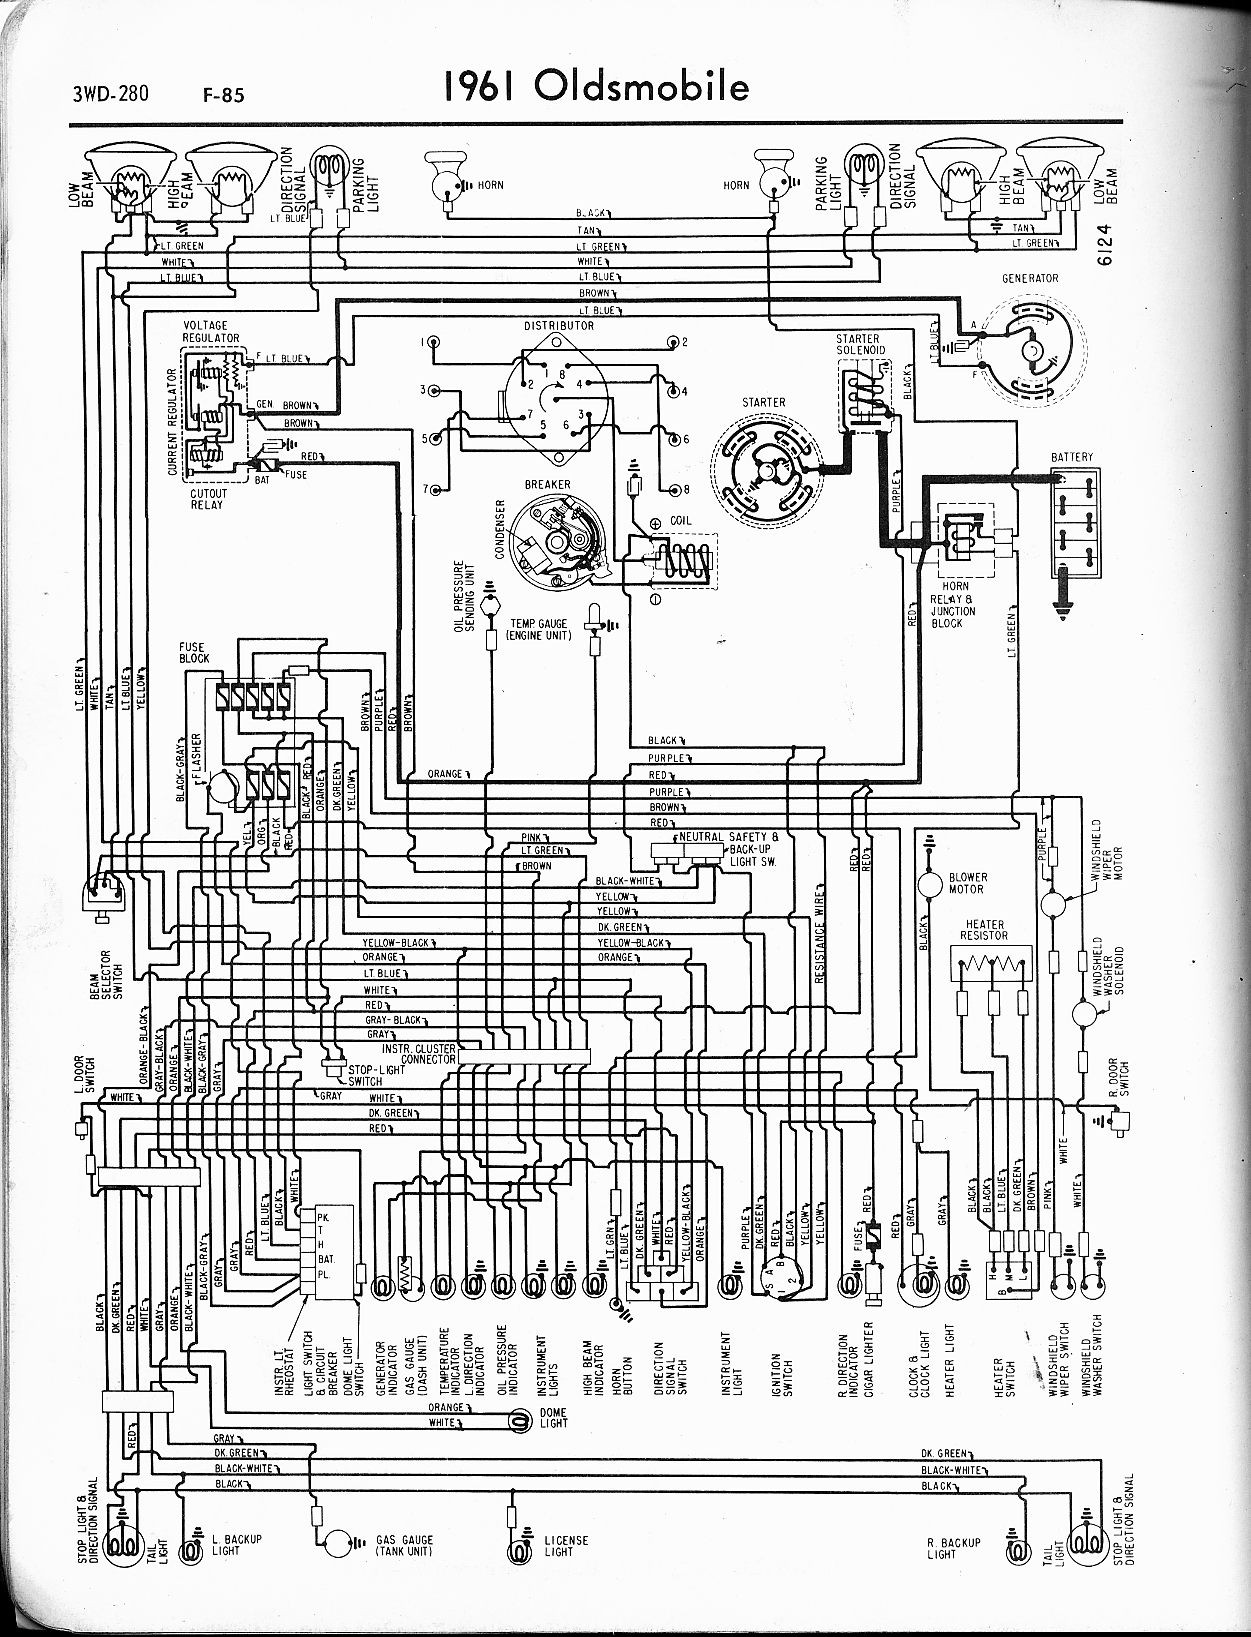 1973 Mustang Wiring Diagram For A Trusted Mach 1 Oldsmobile Portal U2022 1986